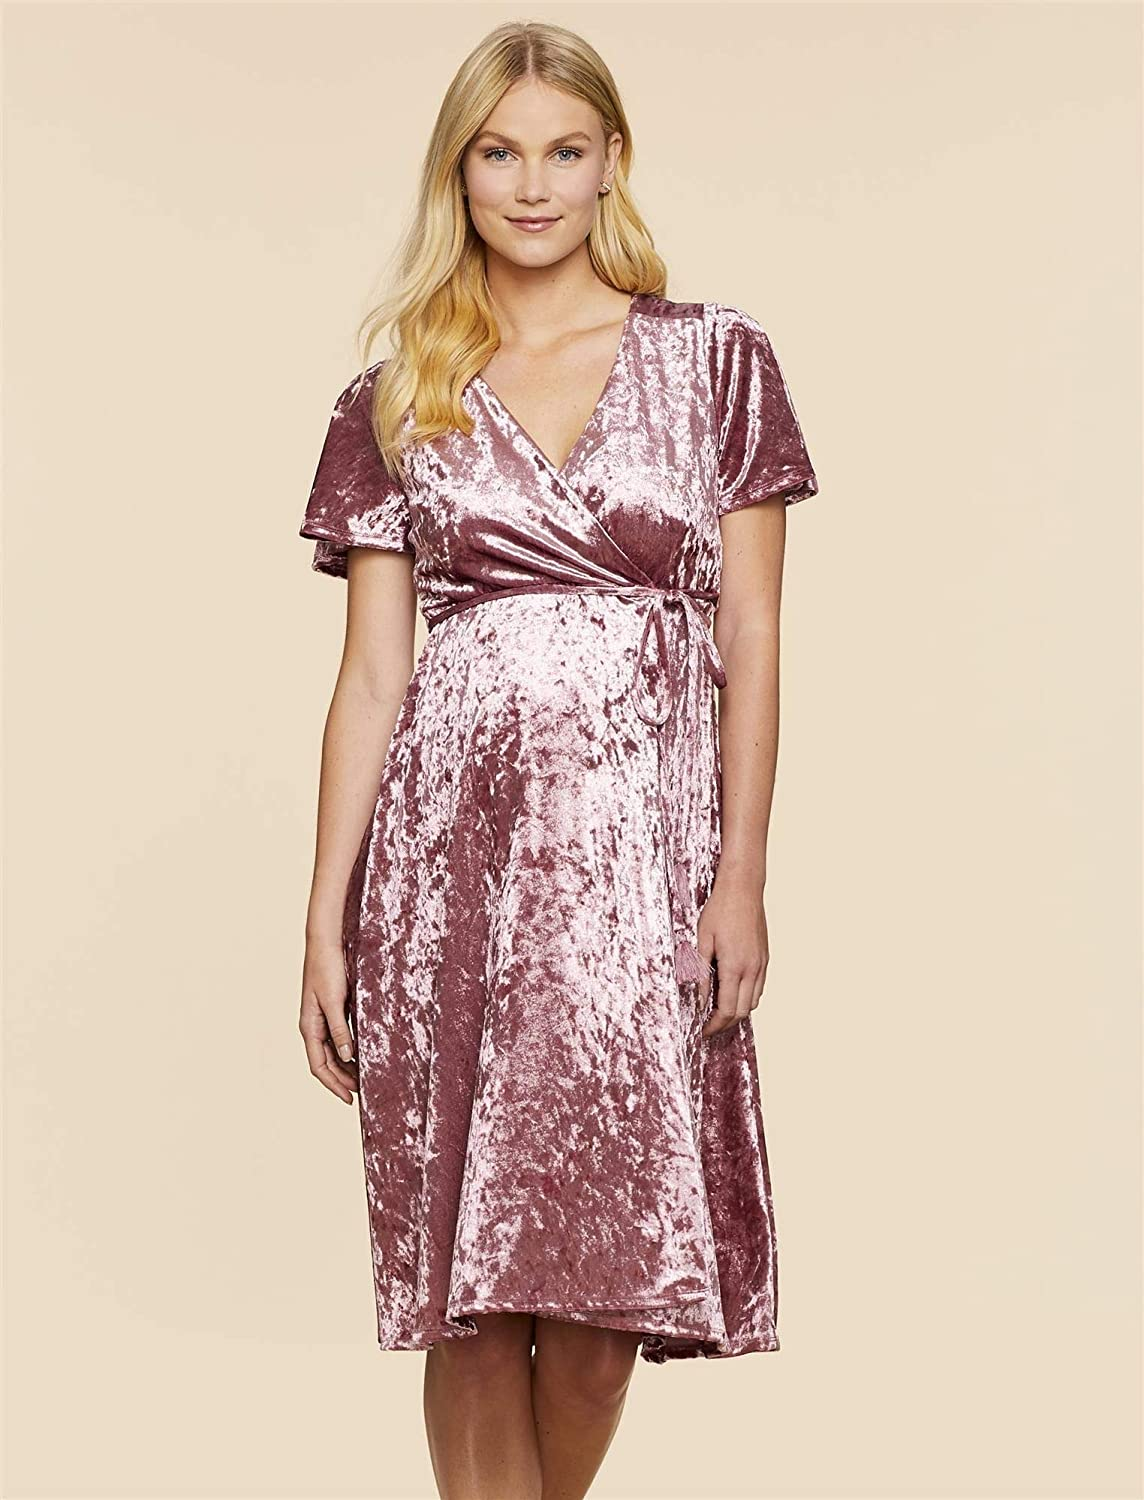 a5cf4c4255f21 Jessica Simpson Wrap Maternity Dress at Amazon Women's Clothing store: